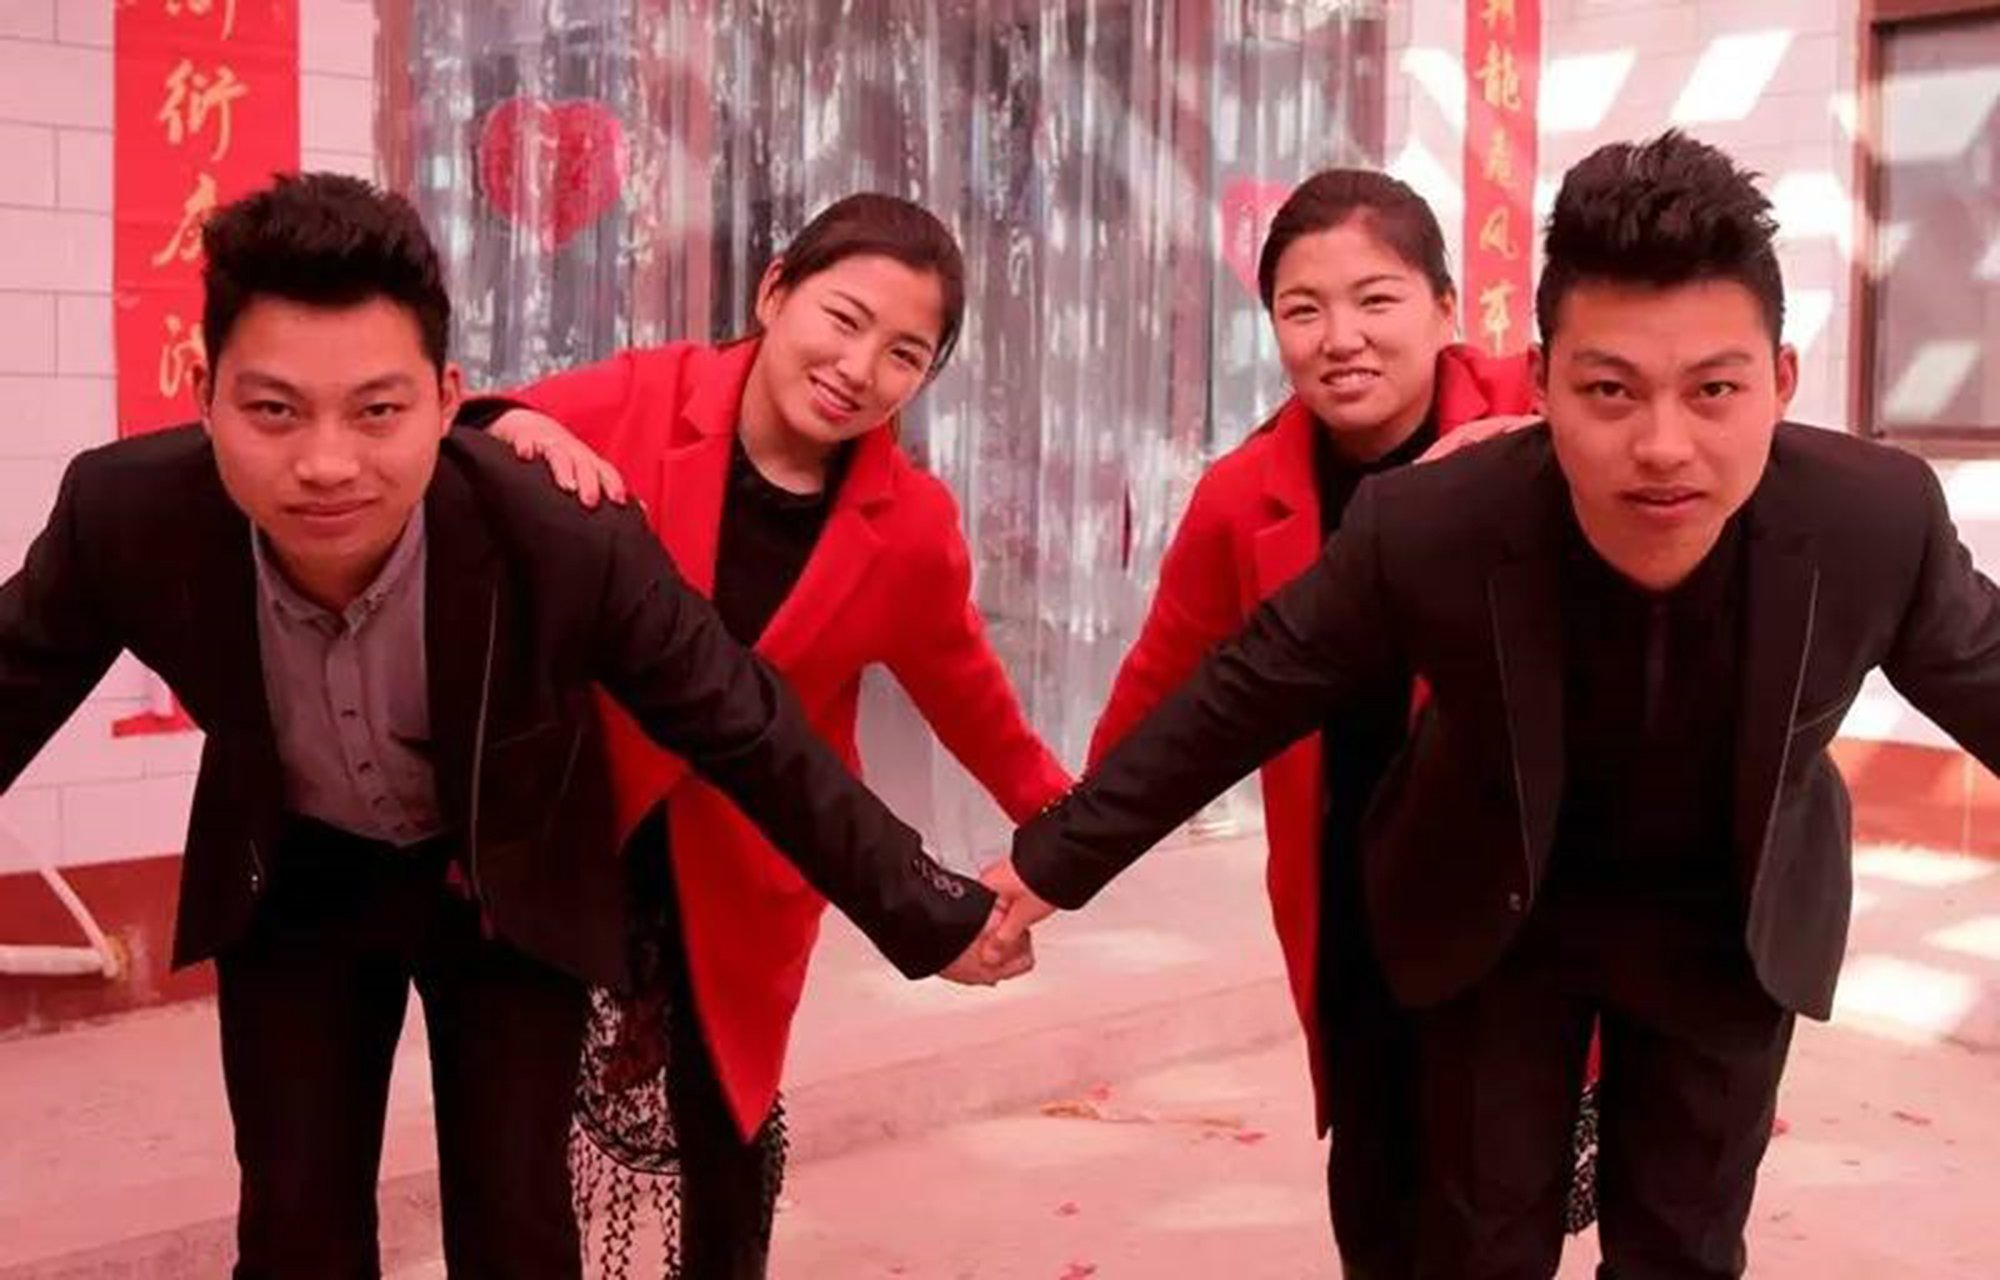 Pic shows: The two identical couples.nnA pair of identical twin brothers in China who married identical twin sisters are to have minor cosmetic surgery in order to help with their awkward identification problems.nnThe decision comes after friends and family had constantly complained about not being able to tell them apart before, during, and after their wedding.nnBut the issue reached a worrying point when one brother found himself holding the hand of his sister-in-law one night after dinner.nnZhao Xin and younger brother Zhao Xun, from a village in Yuncheng City, in North China¿s Shanxi Province, had been causing headaches for their relatives ever since they started dating sisters Yun Fei and Yun Yang, from a village 10 kilometres (6 miles) away.nnEven on their wedding day during the past Chinese New Year, the couples and their parents had to double-check several times to ensure they were not marrying the wrong partner.nnThe two pairs of identical siblings, aged 22, are said to be so alike that it is not even possible to tell them apart by their voices.nnWhile plastic surgery is still largely taboo in conservative Chinese societies, the couples and their relatives believe a minor adjustment would do them a world of good.nnThey are especially keen to avoid awkward situations similar to that which occurred earlier this year, when one newlywed husband apparently ended up holding the hand of his brother¿s wife during an evening stroll after dinner.nnReports said a hospital in China¿s eastern city of Shanghai has agreed to take on the couple¿s case, and will make small adjustments to their appearance so they can distinguish each other more easily.nn(ends)n